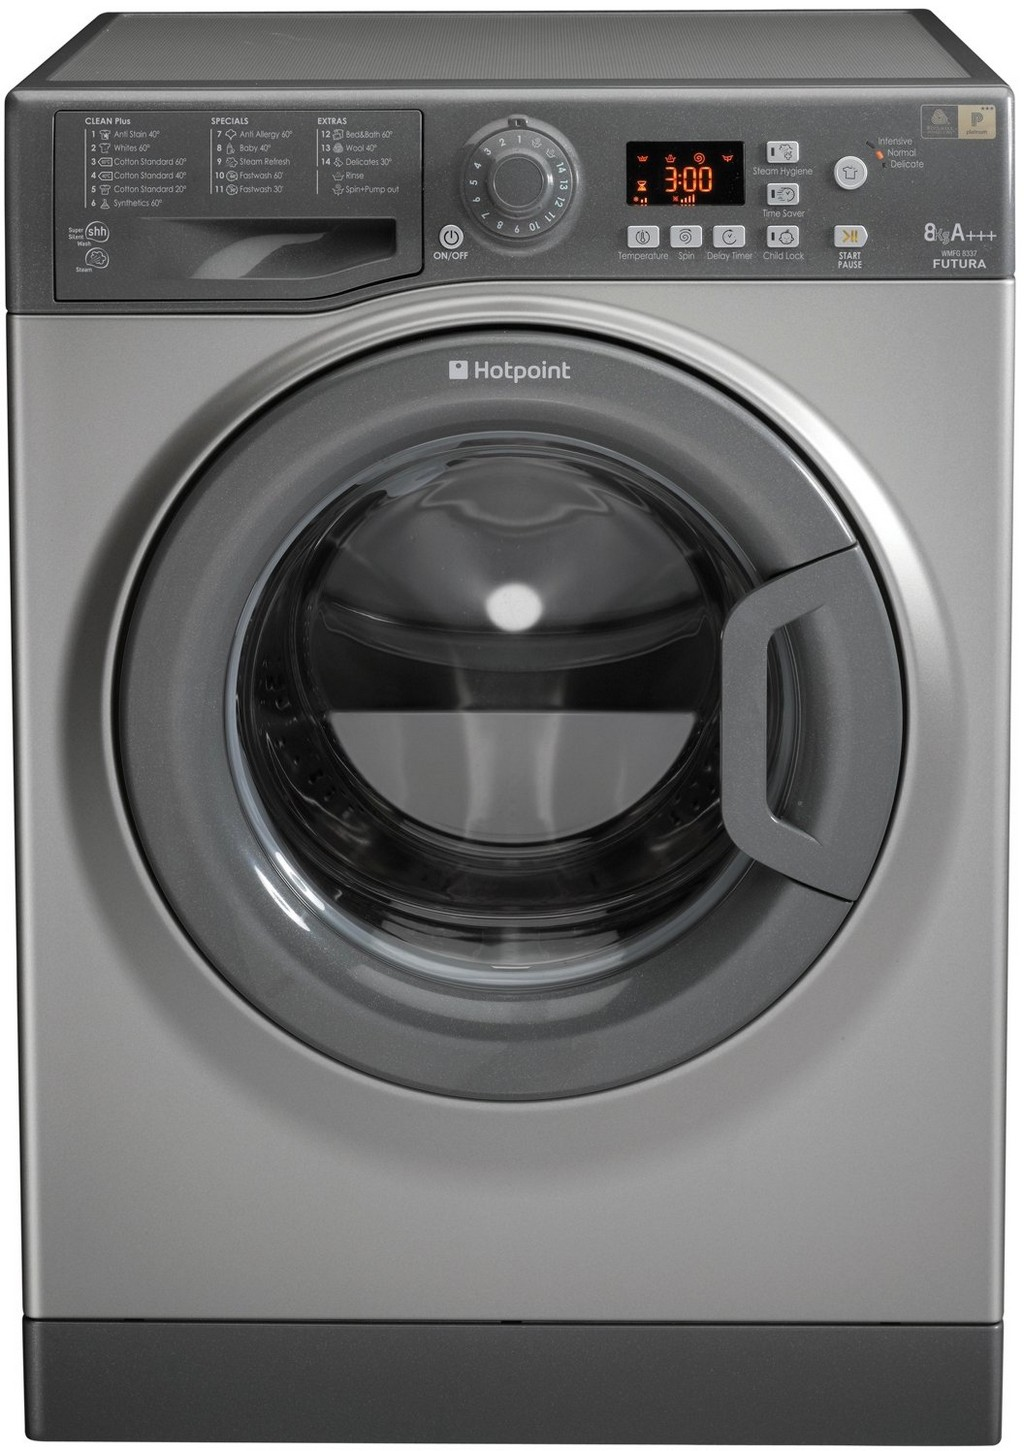 samsung 13kg top loader washing machine manual